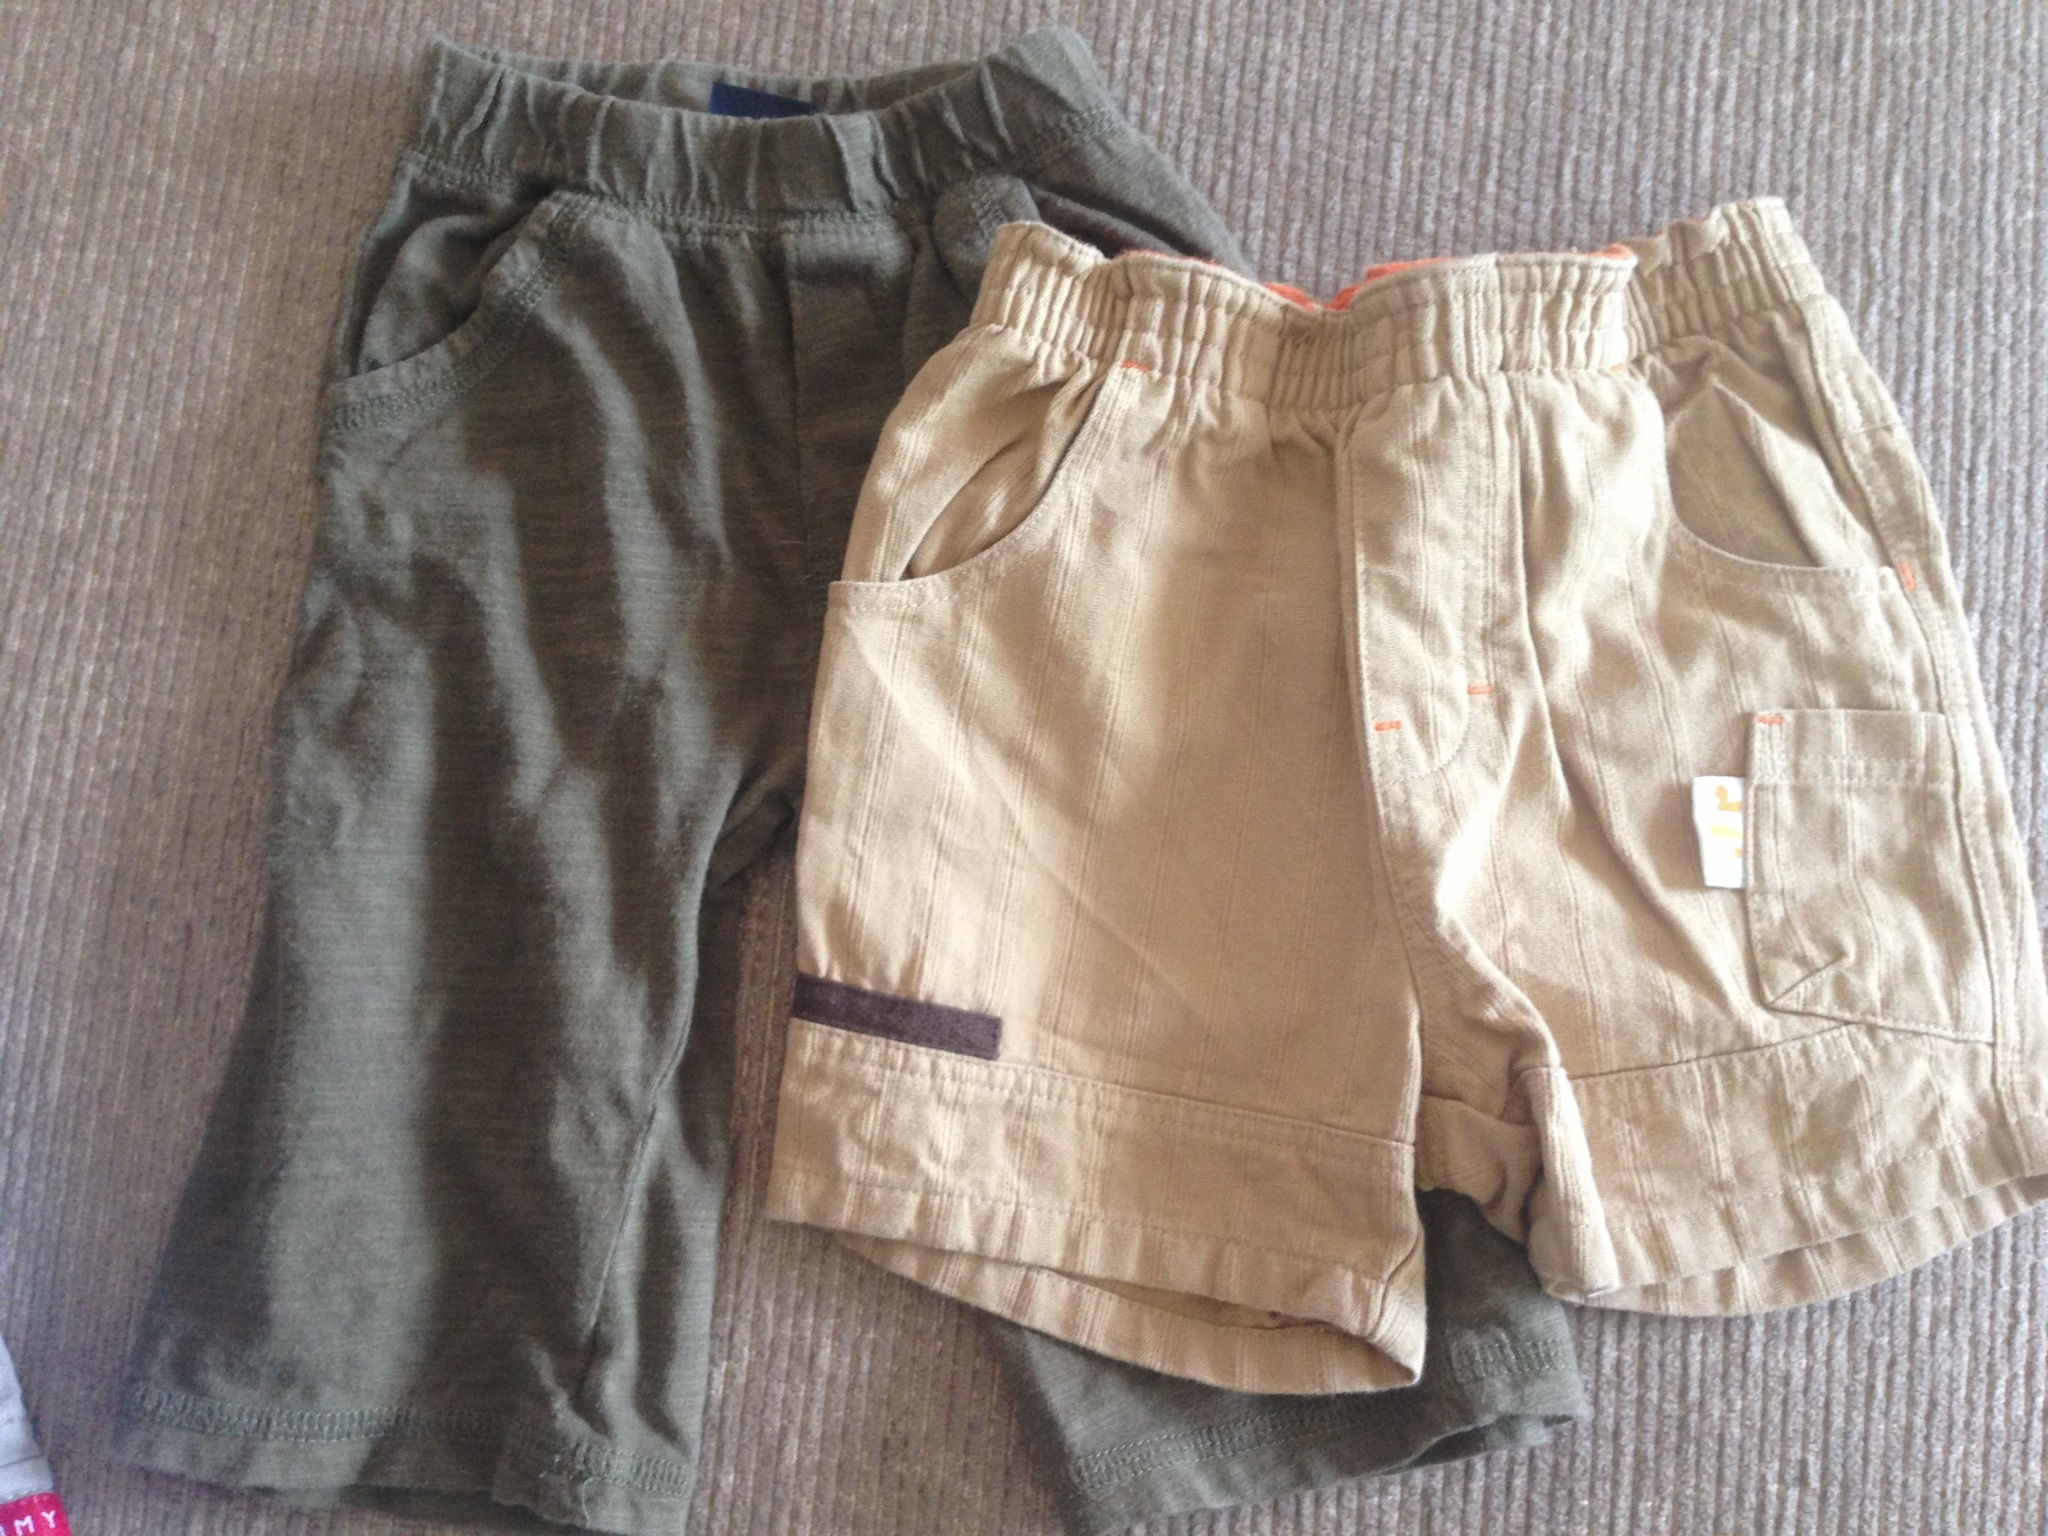 Parenting Page 12 Mom N Bab Short Tee Khaki Animal Head Brand New T Shirt From Tu On The Left 50p And One